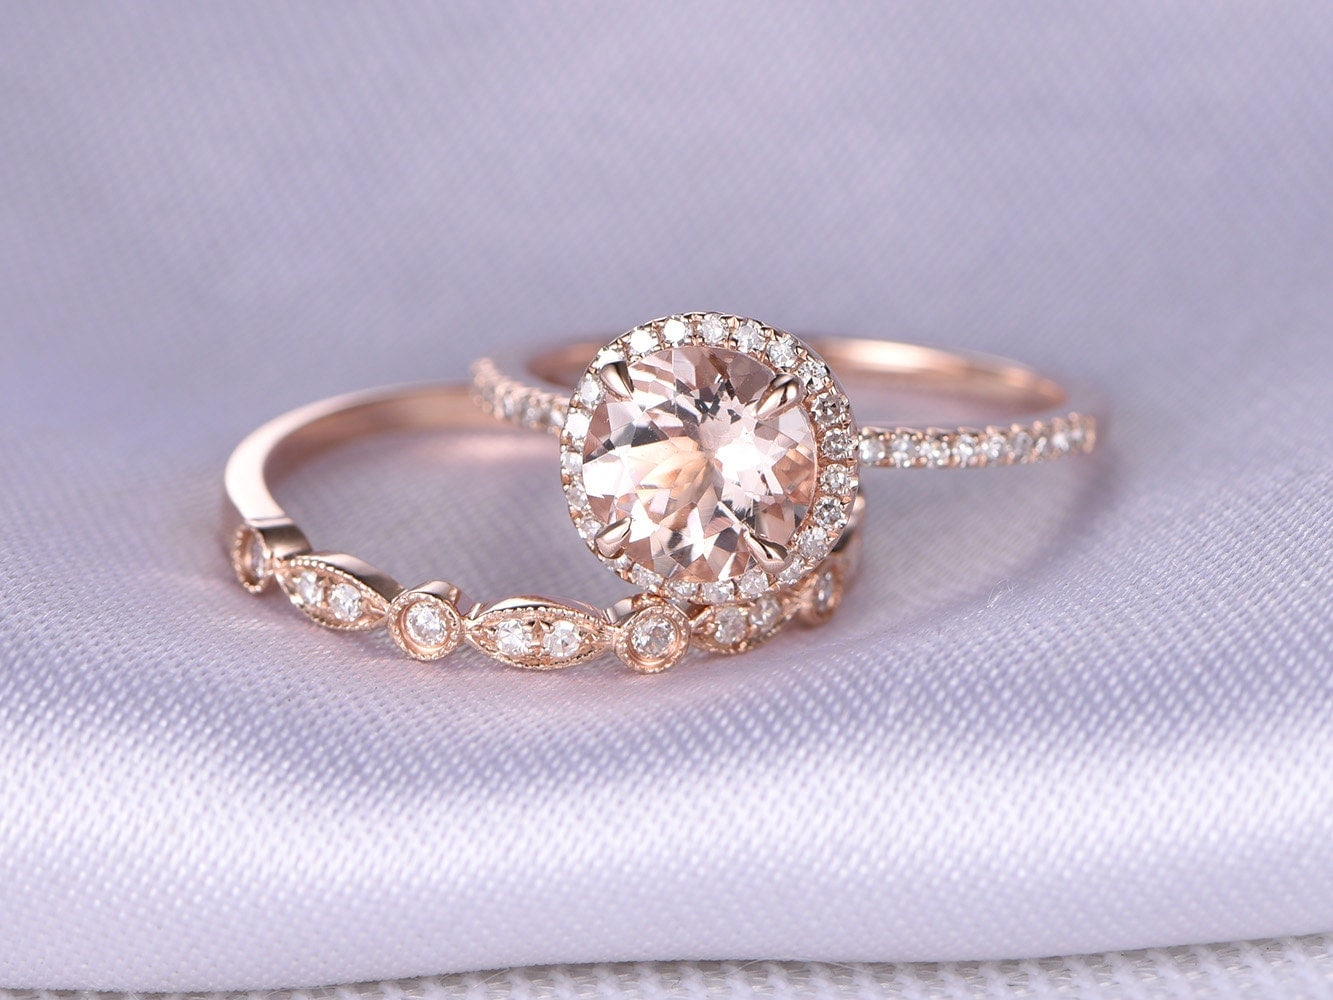 Morganite engagement ring 2pcs wedding ring set 14k rose gold for Wedding band under engagement ring